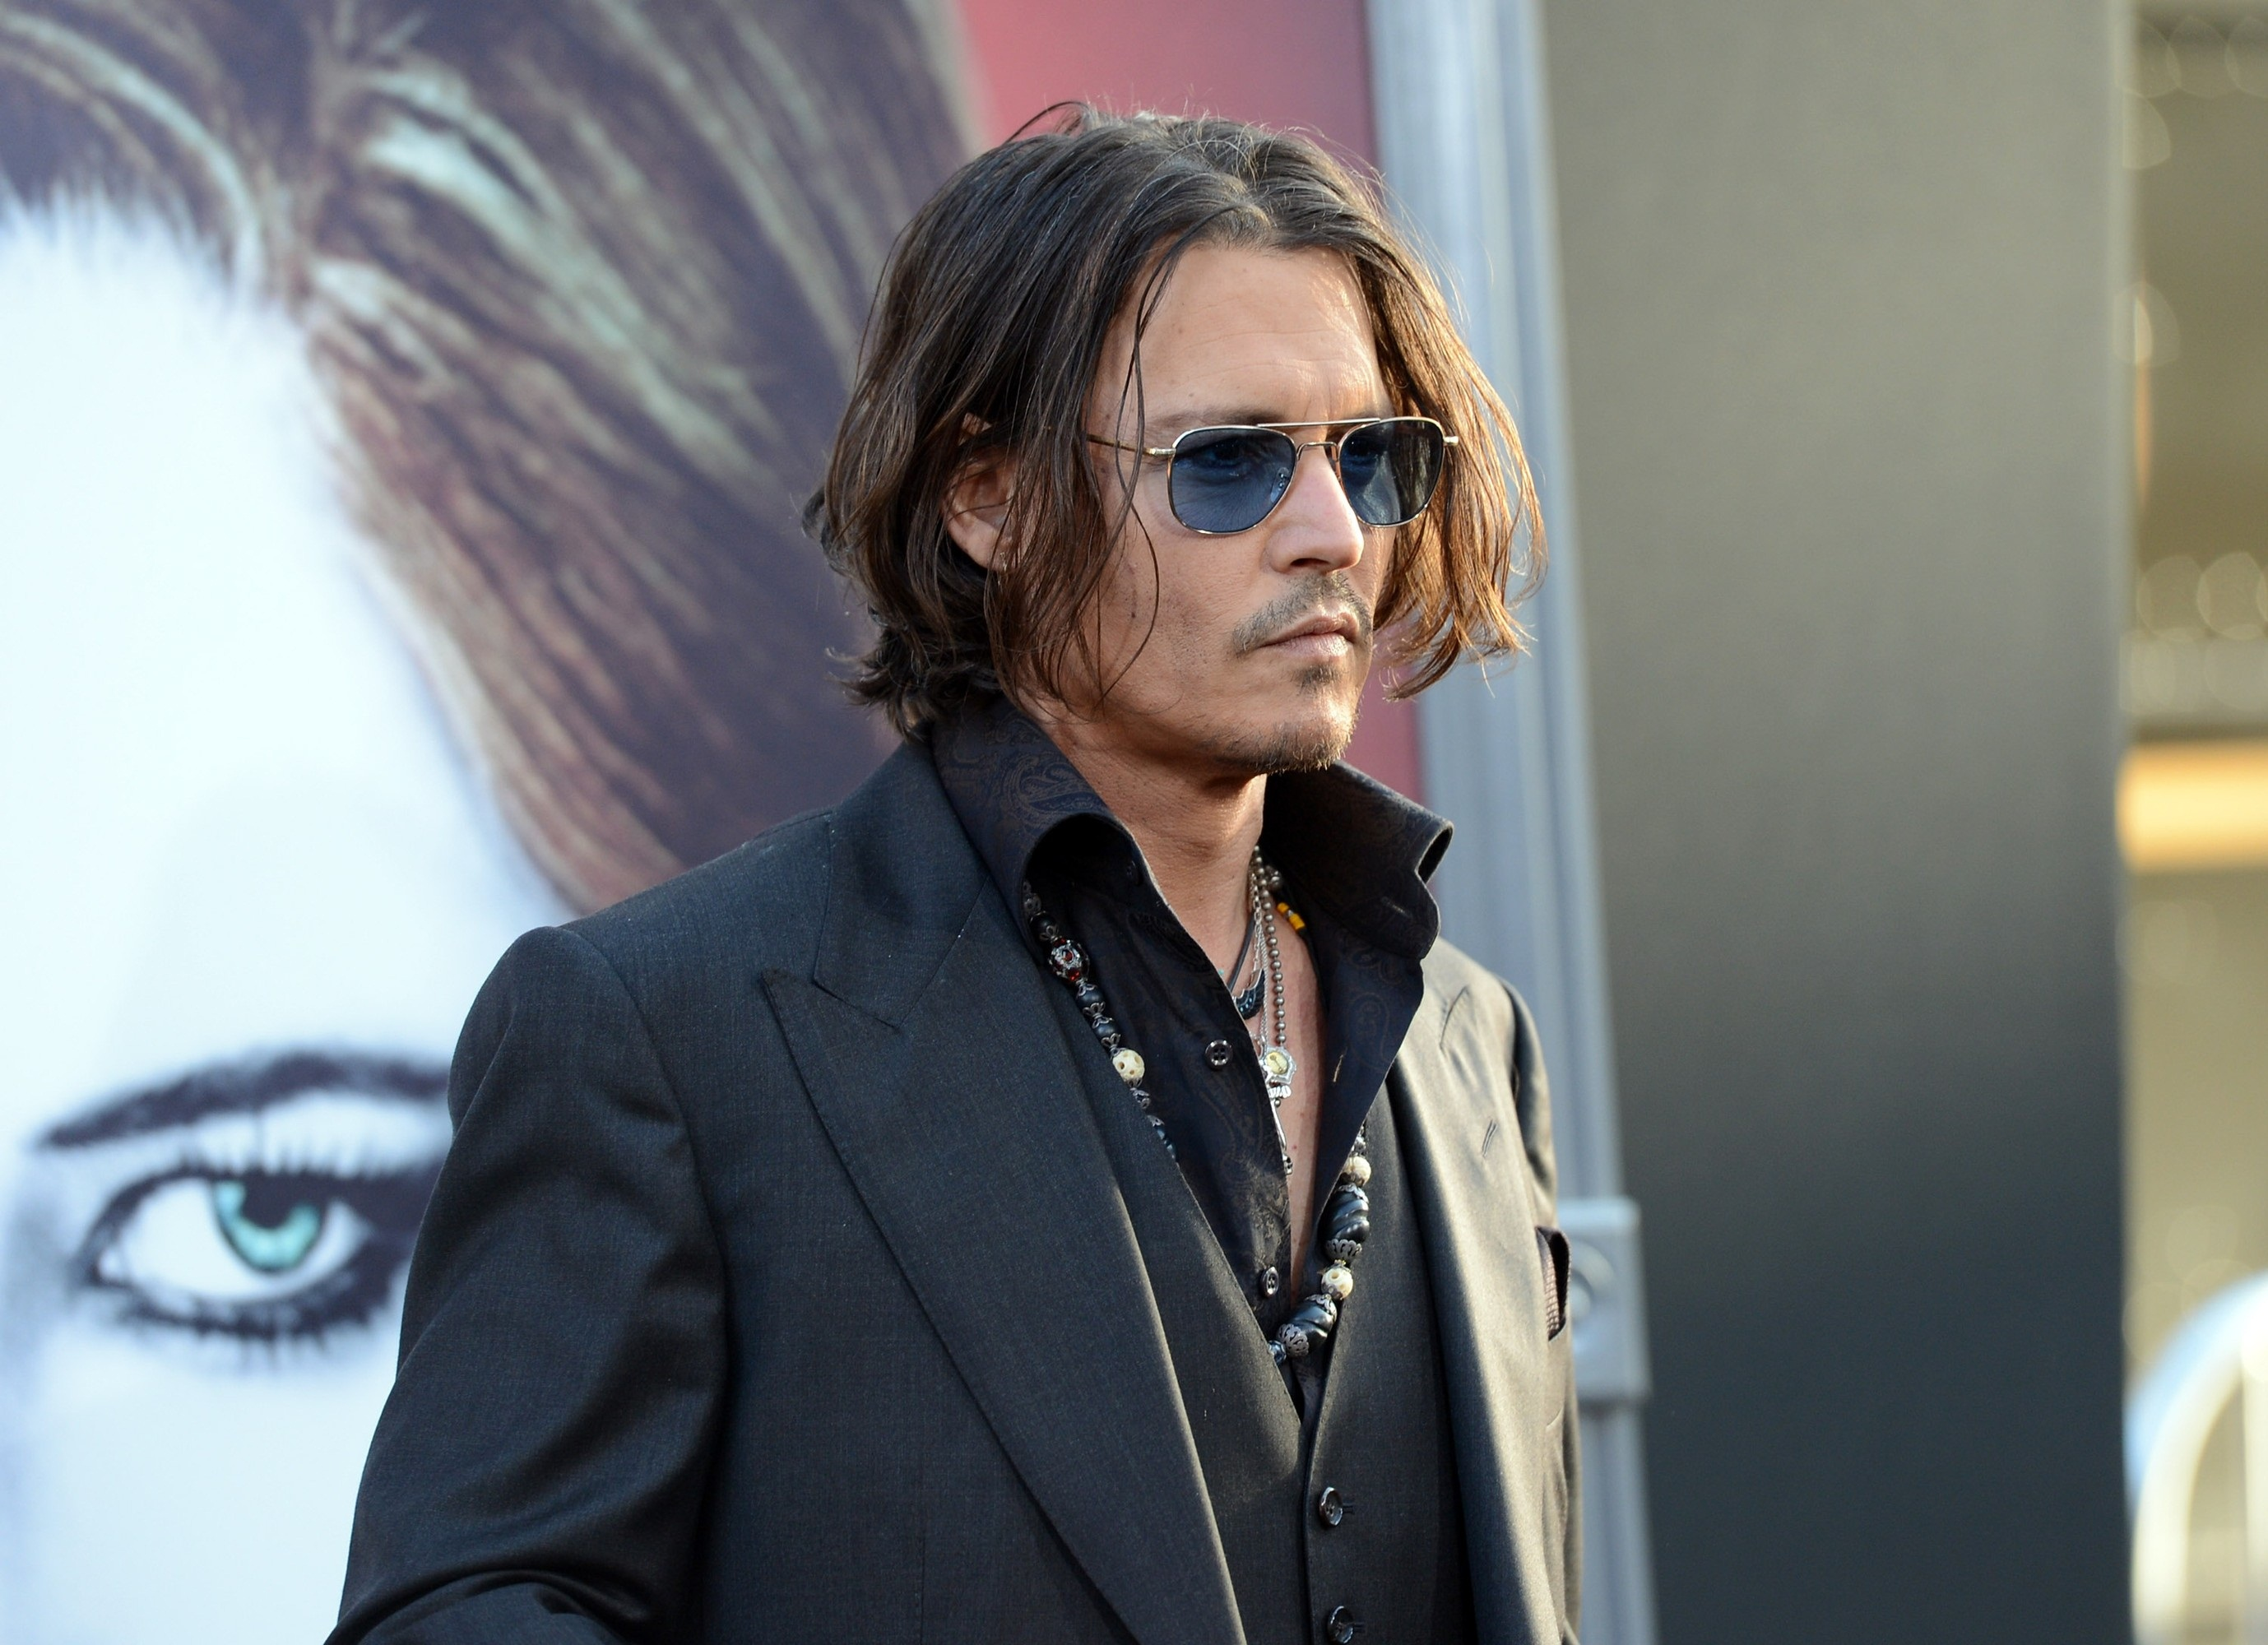 Johnny Depp photo #405592